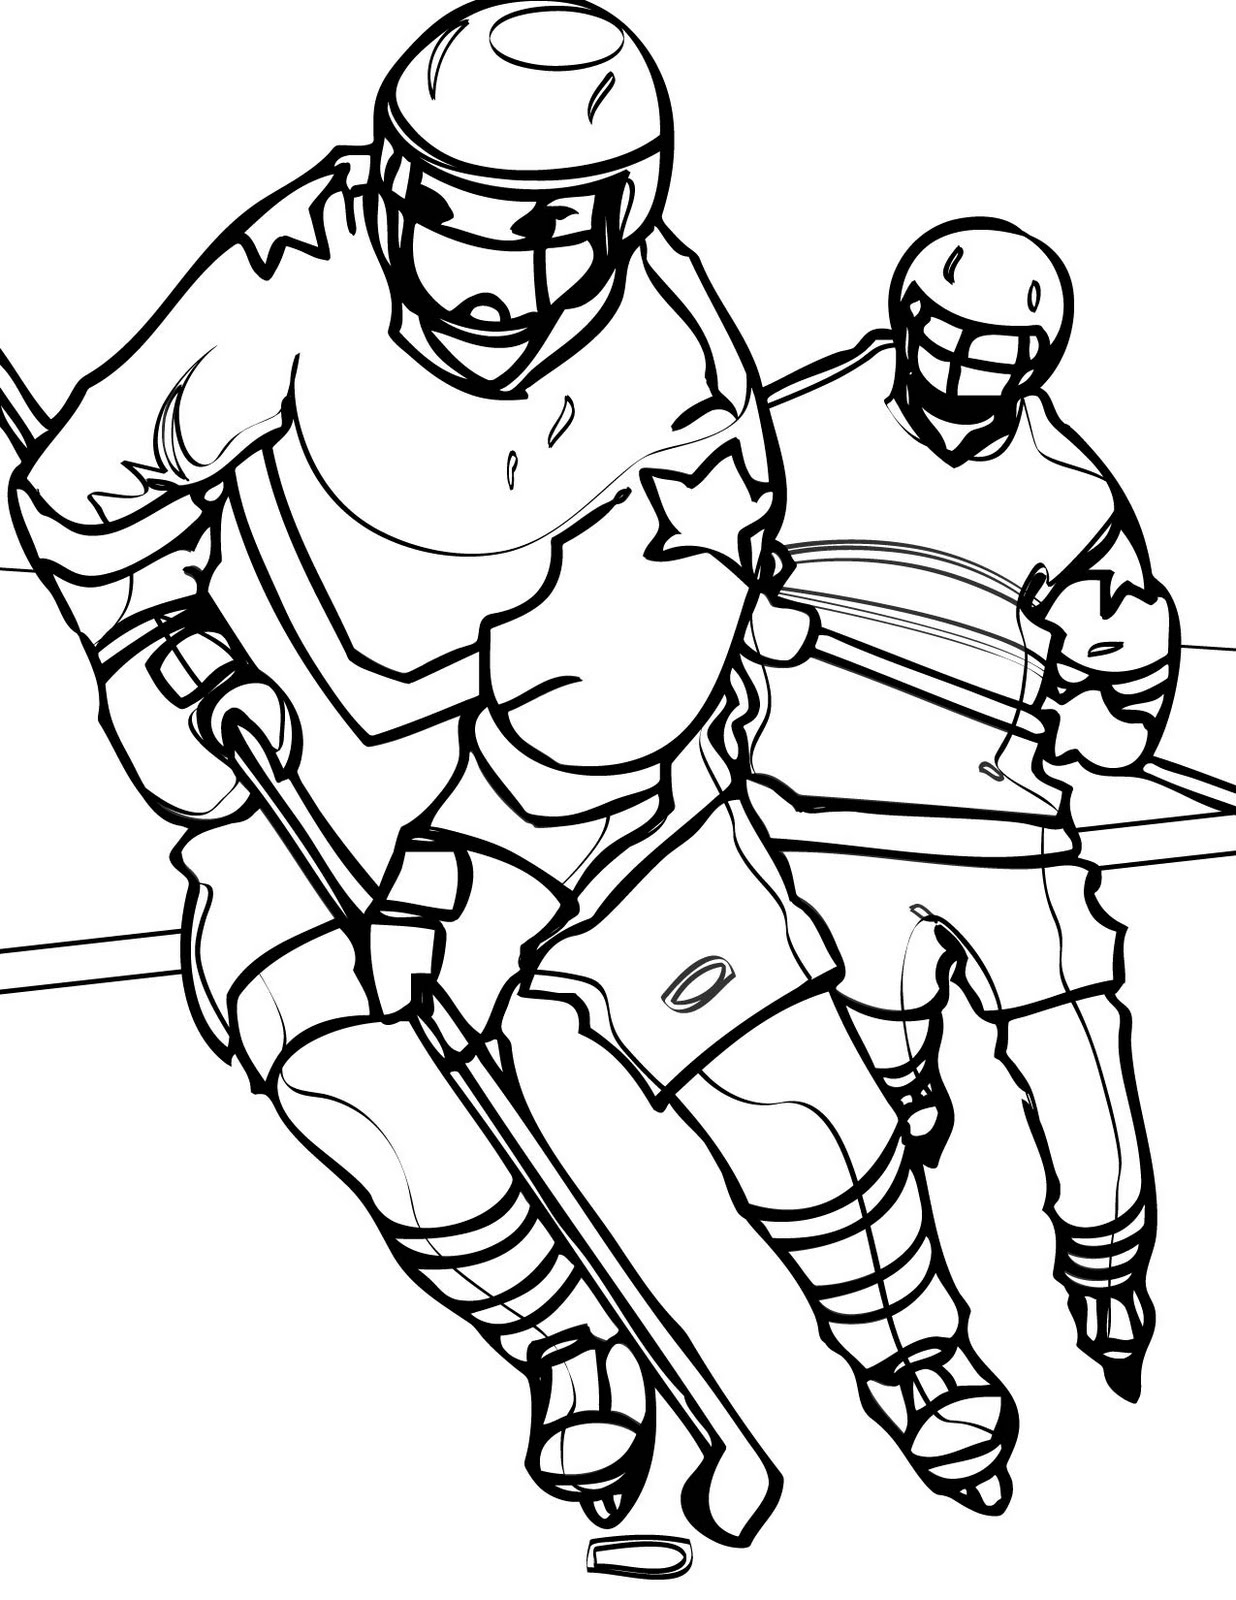 sports colouring pictures sports themed coloring pages at getcoloringscom free sports colouring pictures